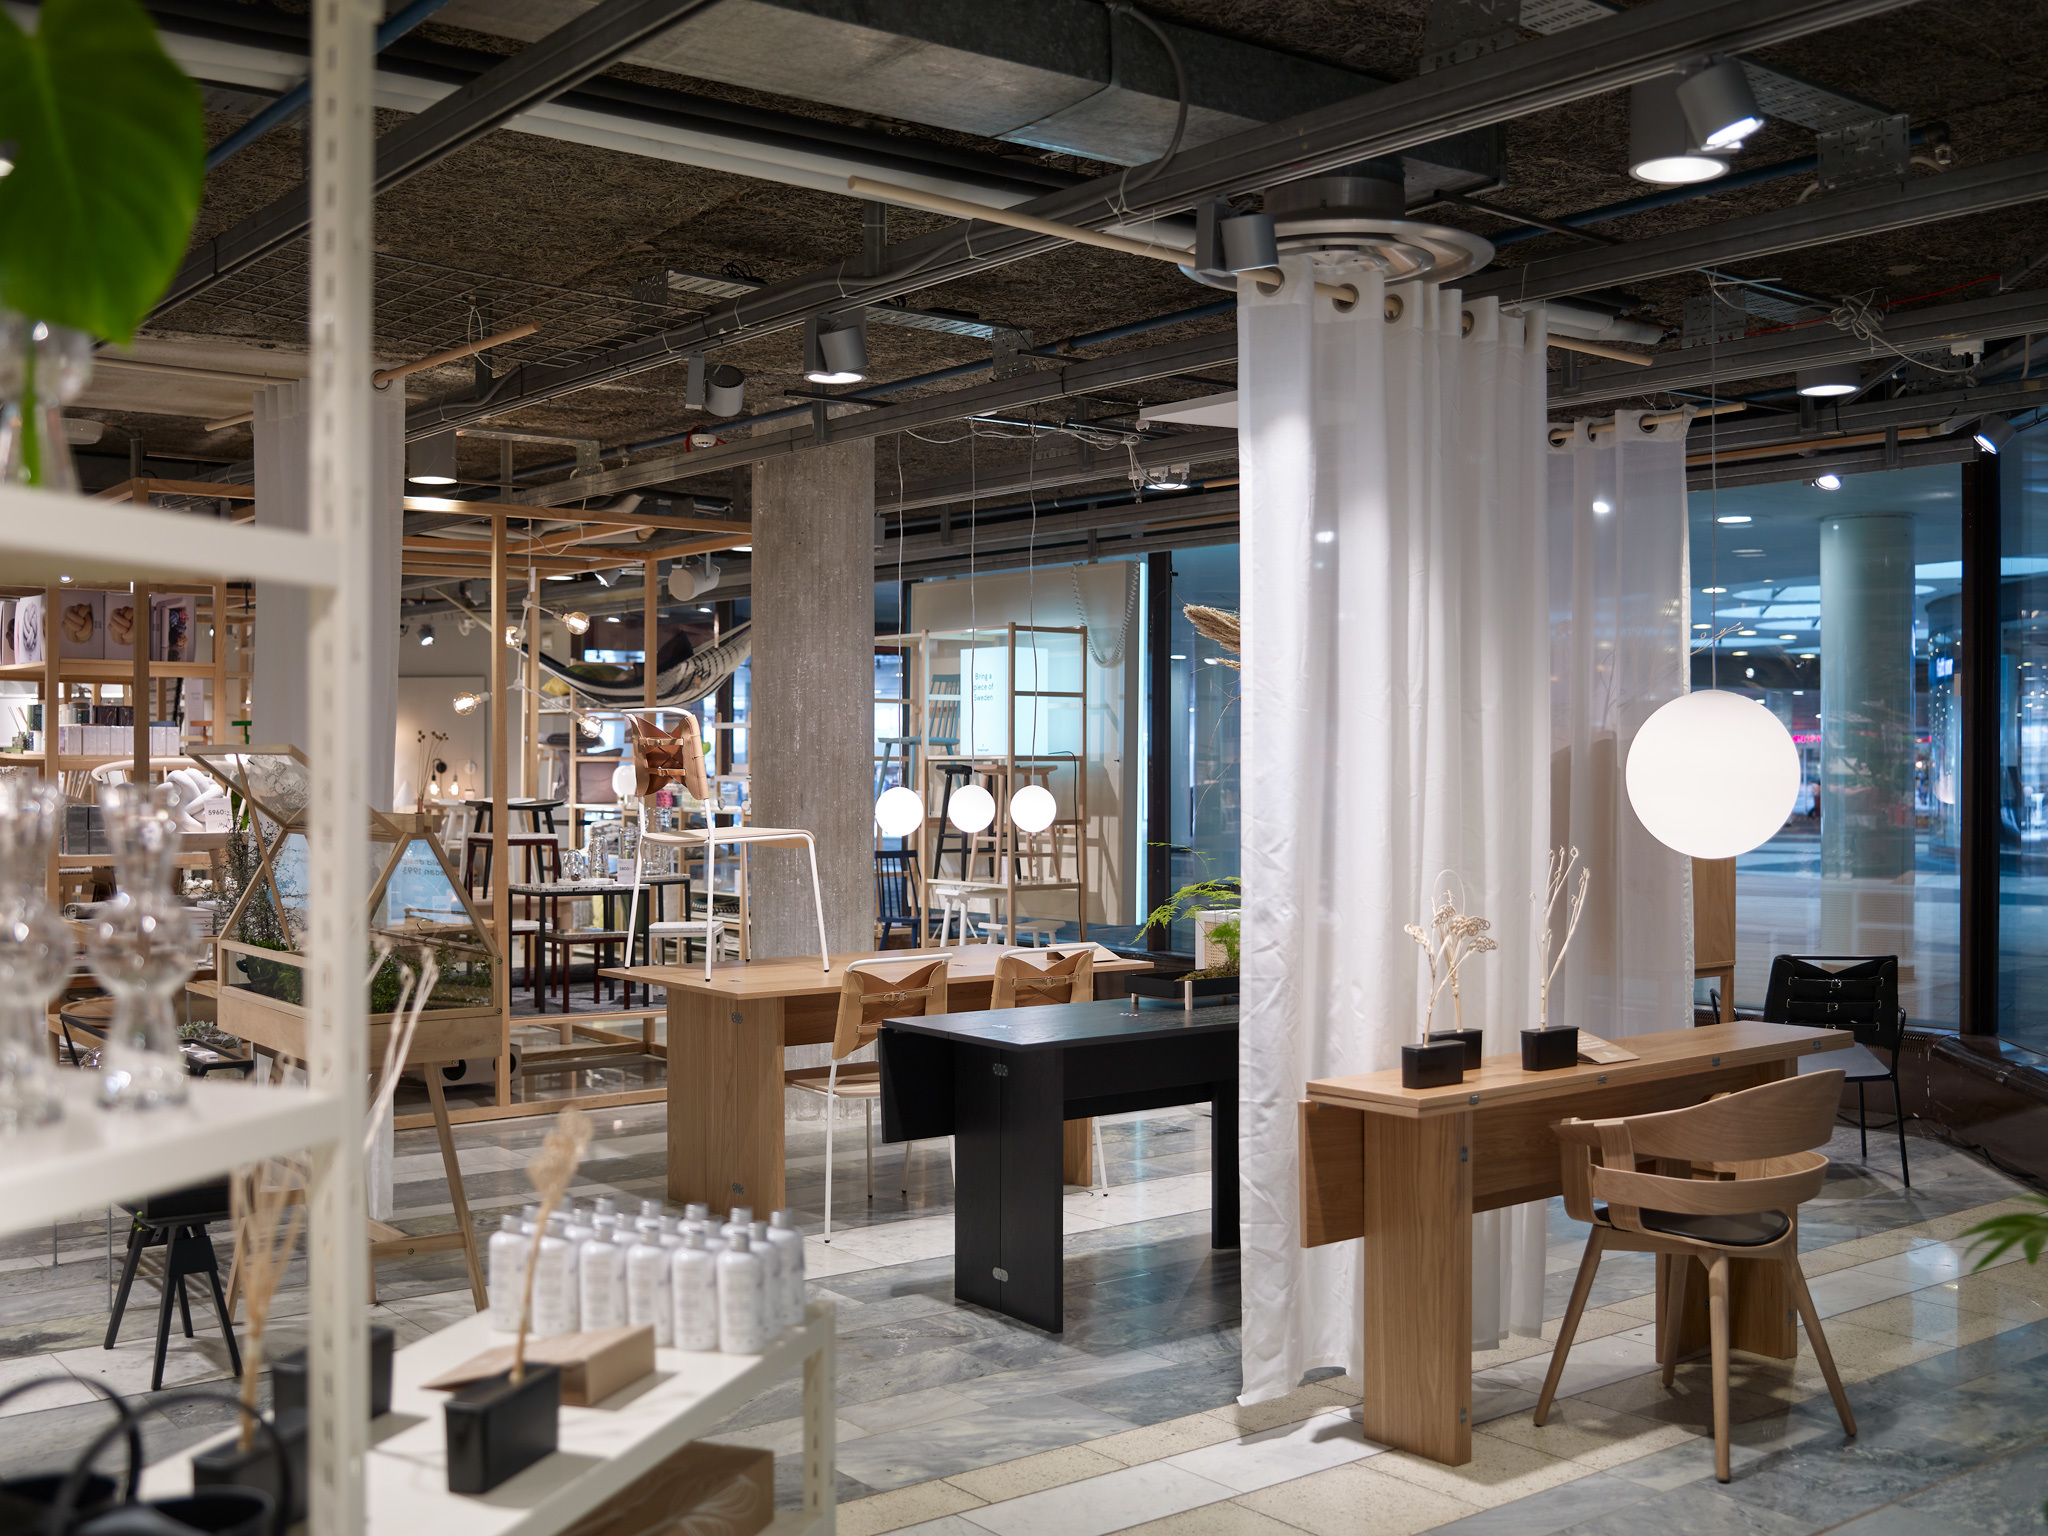 Homeware for sale at the Sergels Torg outlet of Designtorget in Stockholm